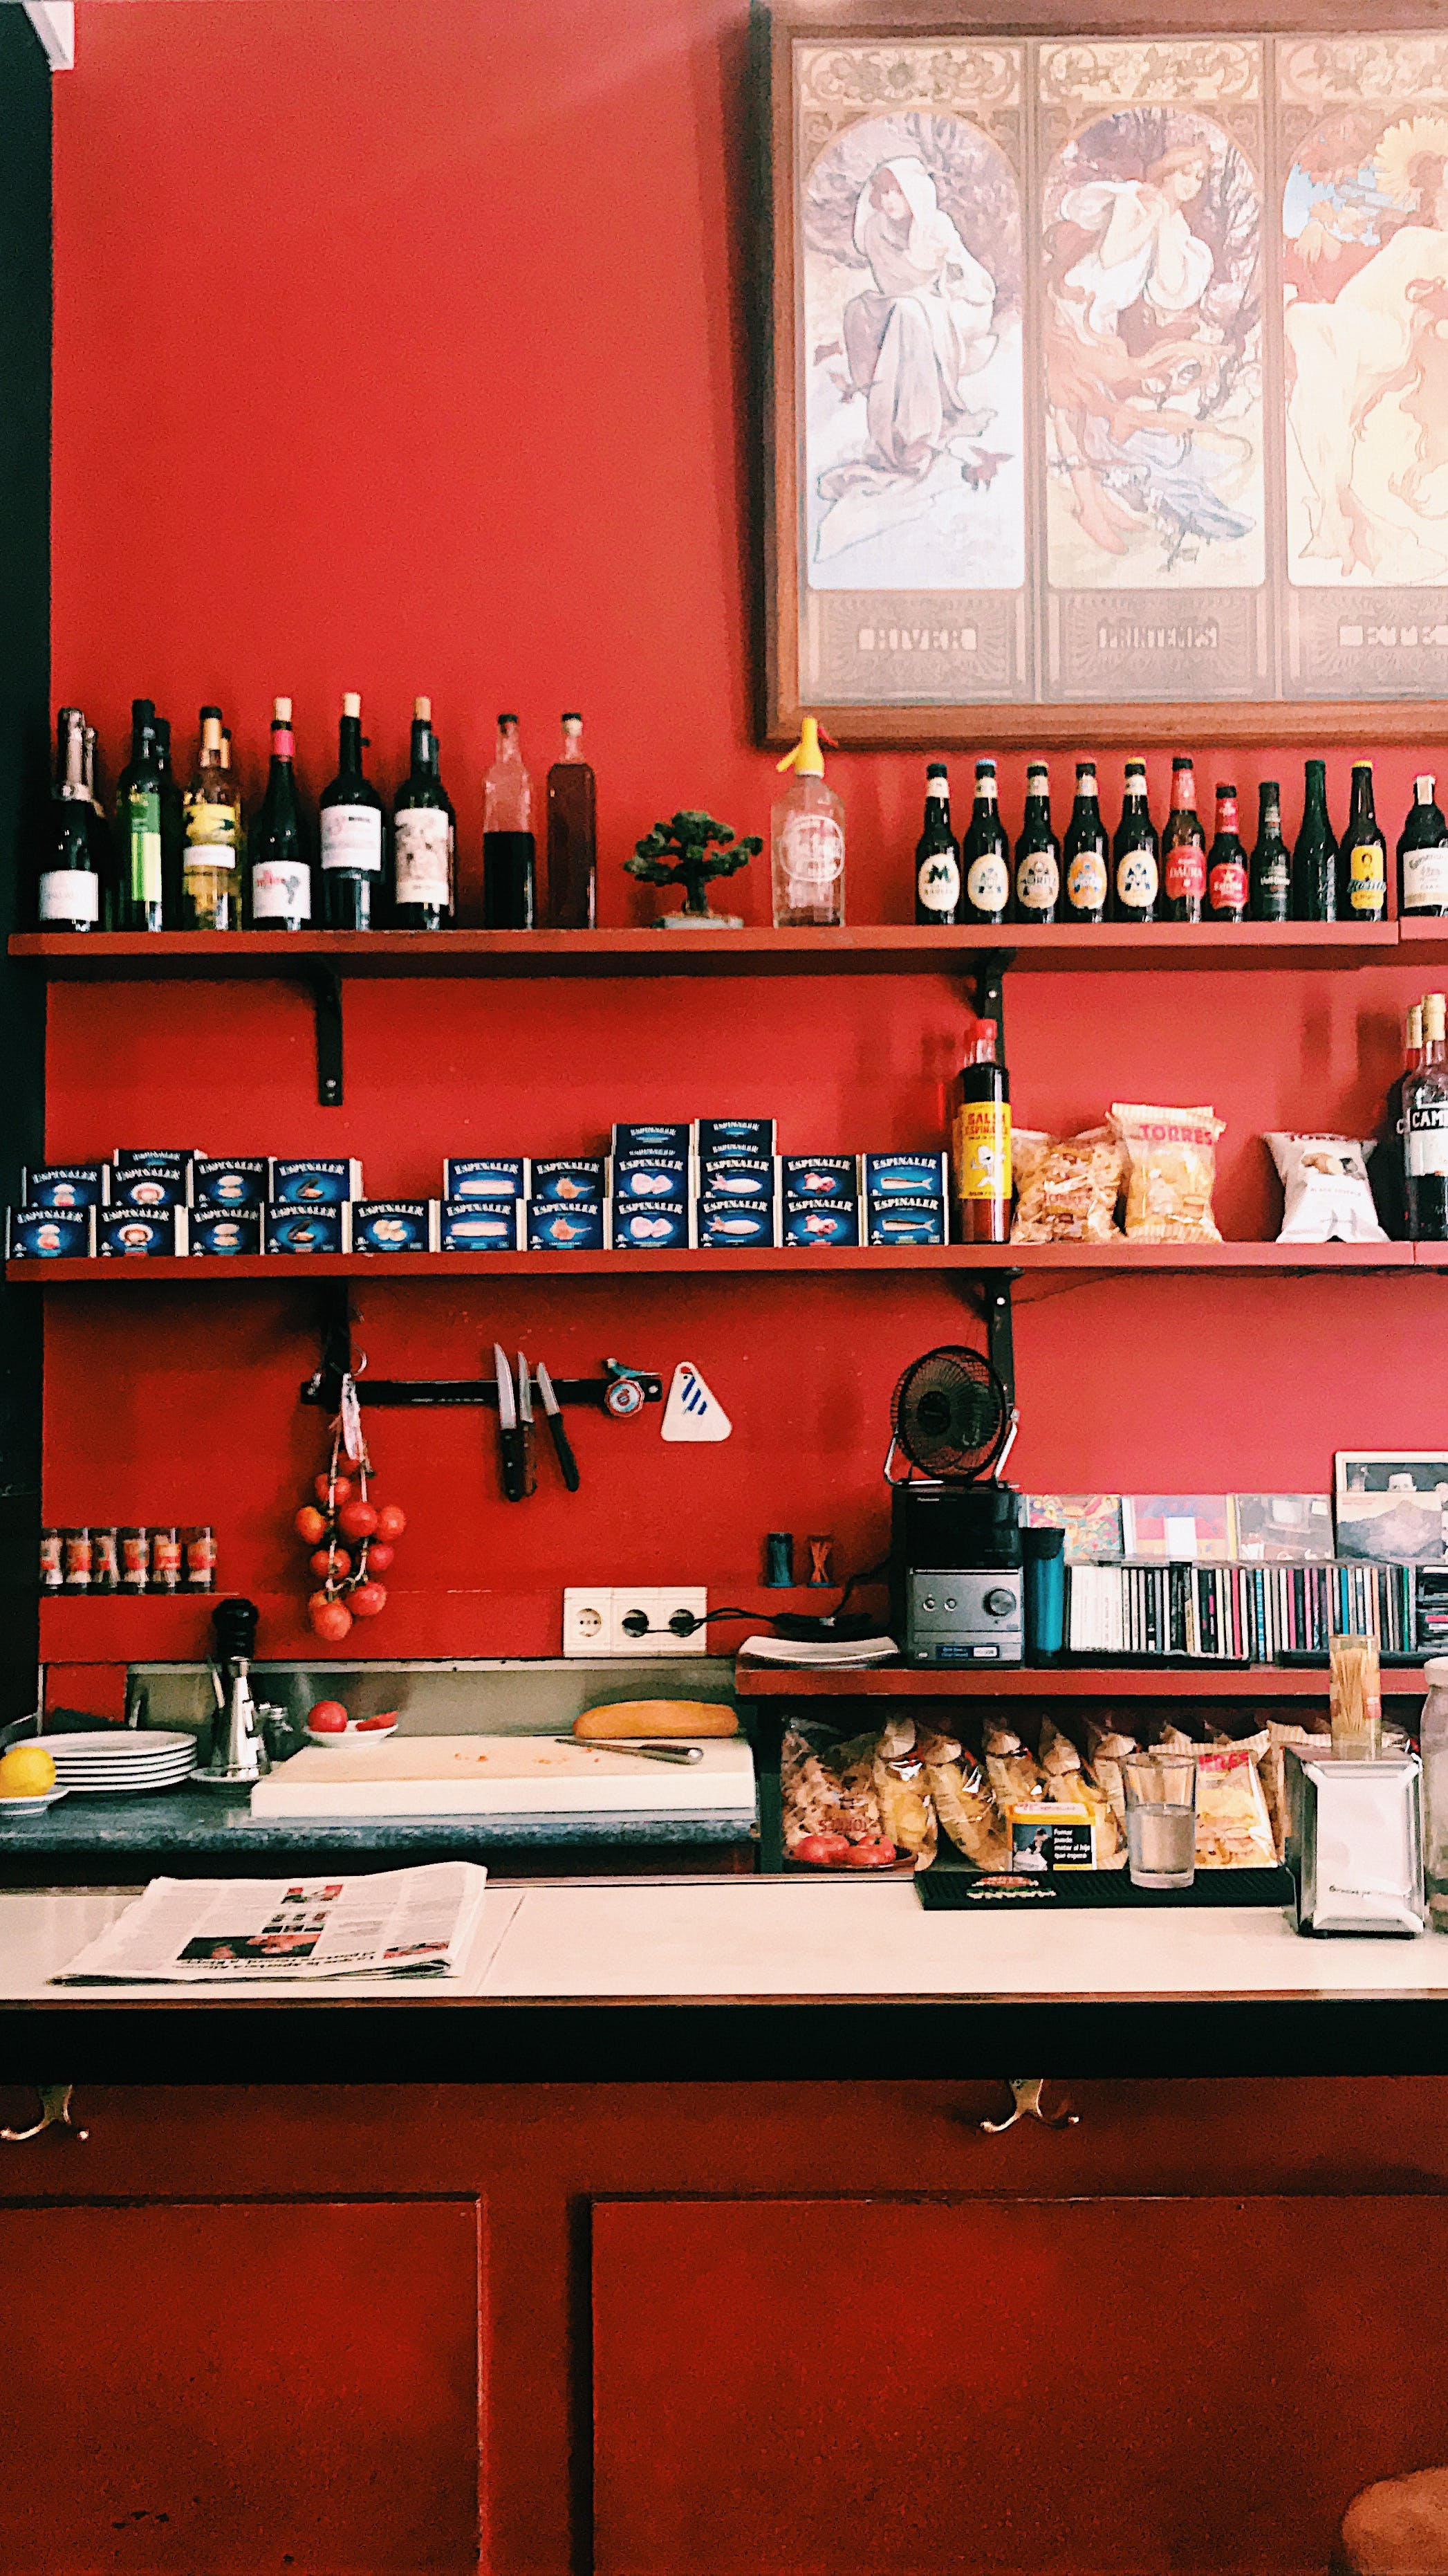 Free stock photo of Red taberna